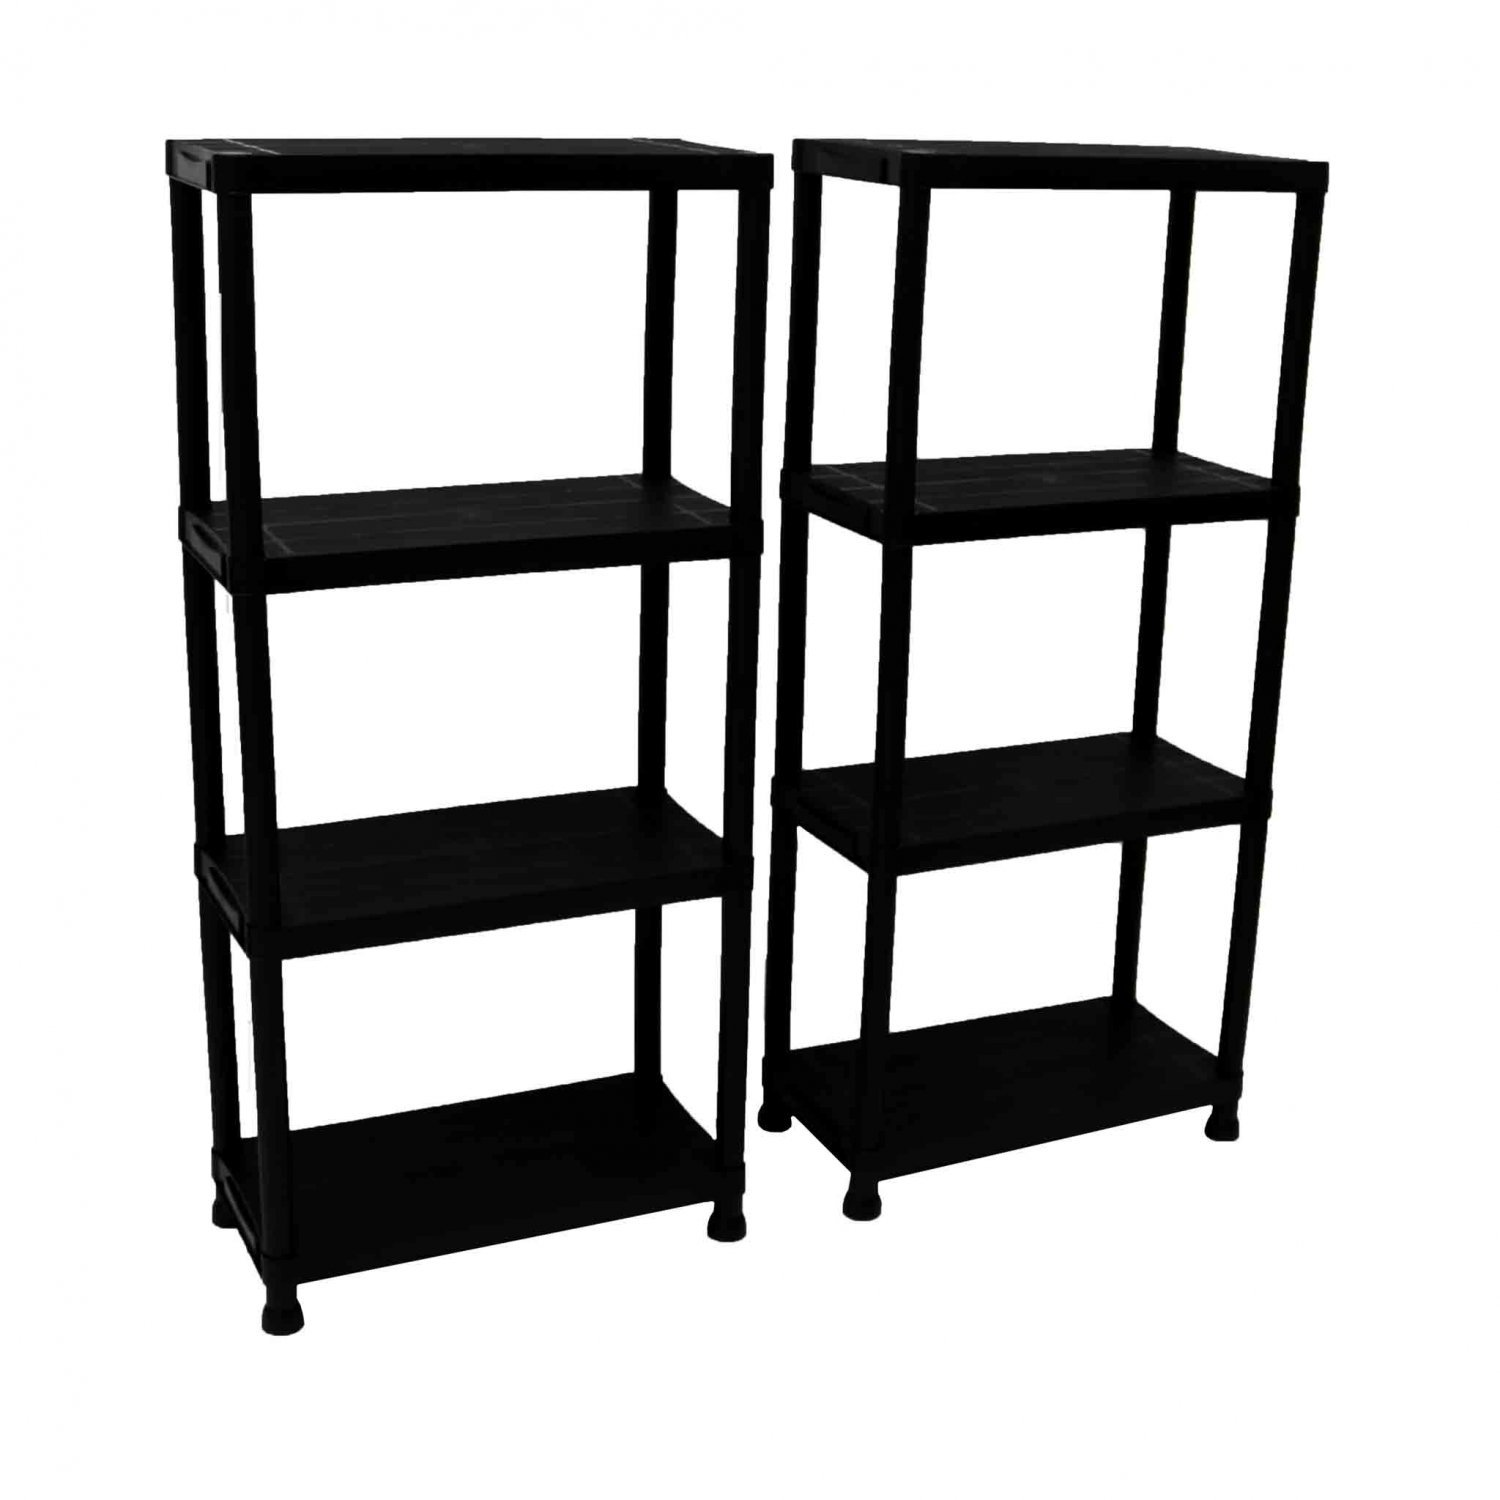 2x 4 tier black plastic heavy duty shelving racking storage unit oypla stocking the. Black Bedroom Furniture Sets. Home Design Ideas